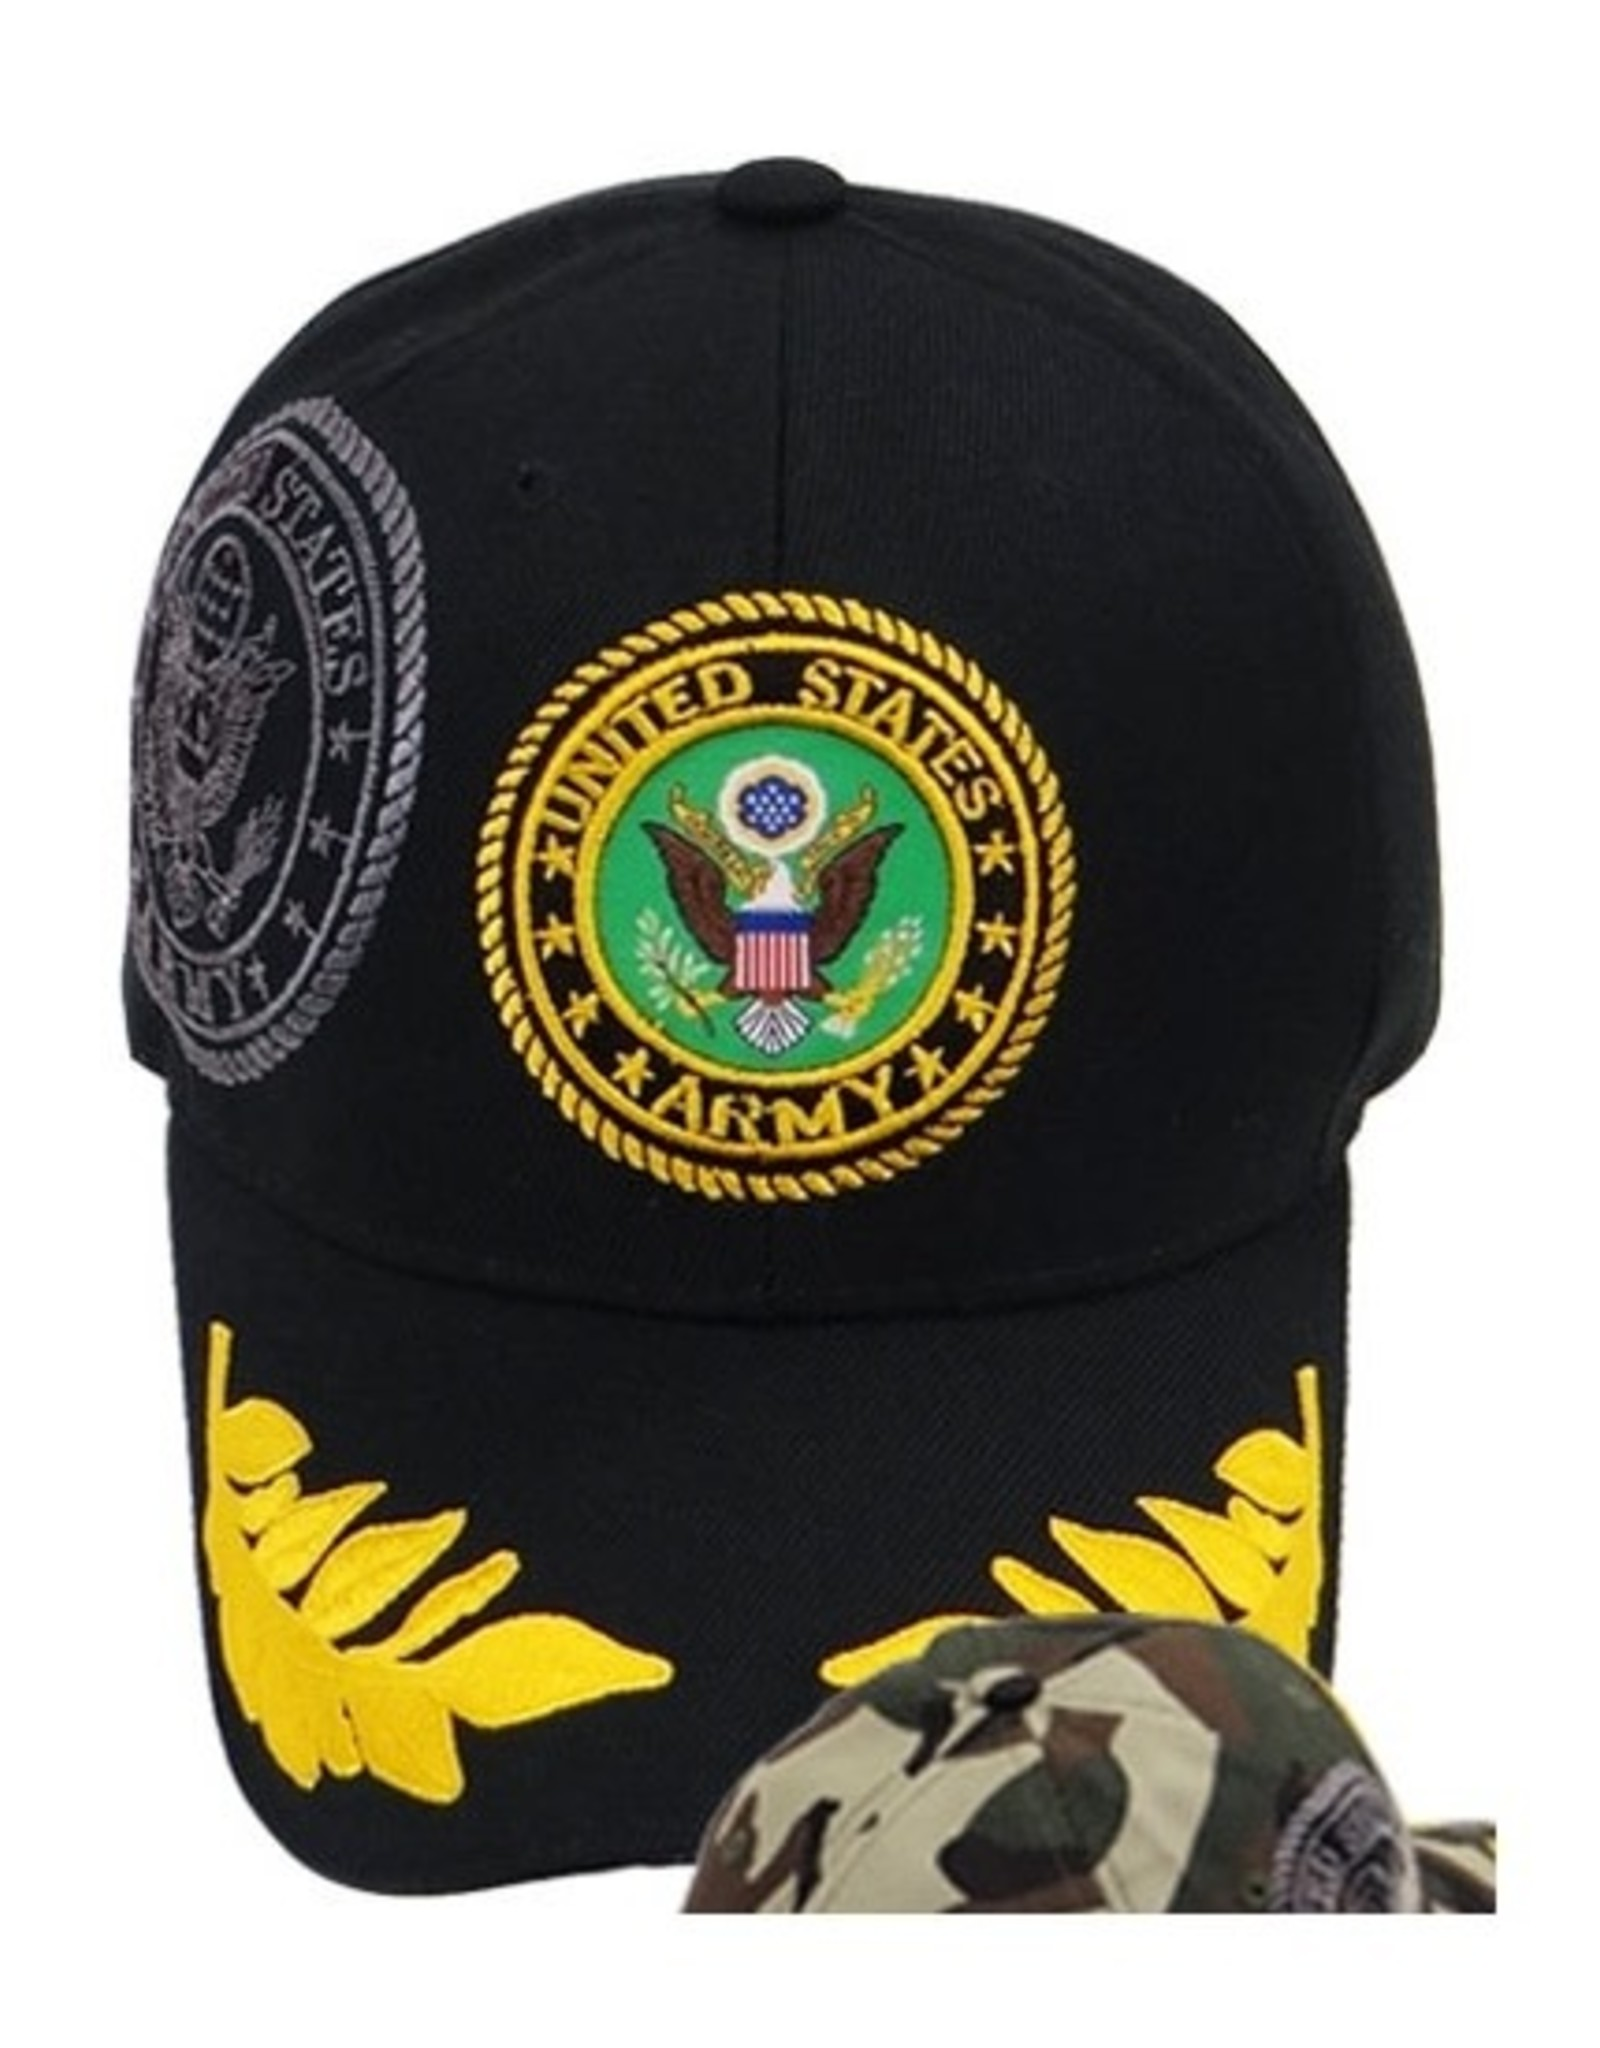 MidMil Army Hat with Seal, Shadow and Oak Leaves on Bill Black